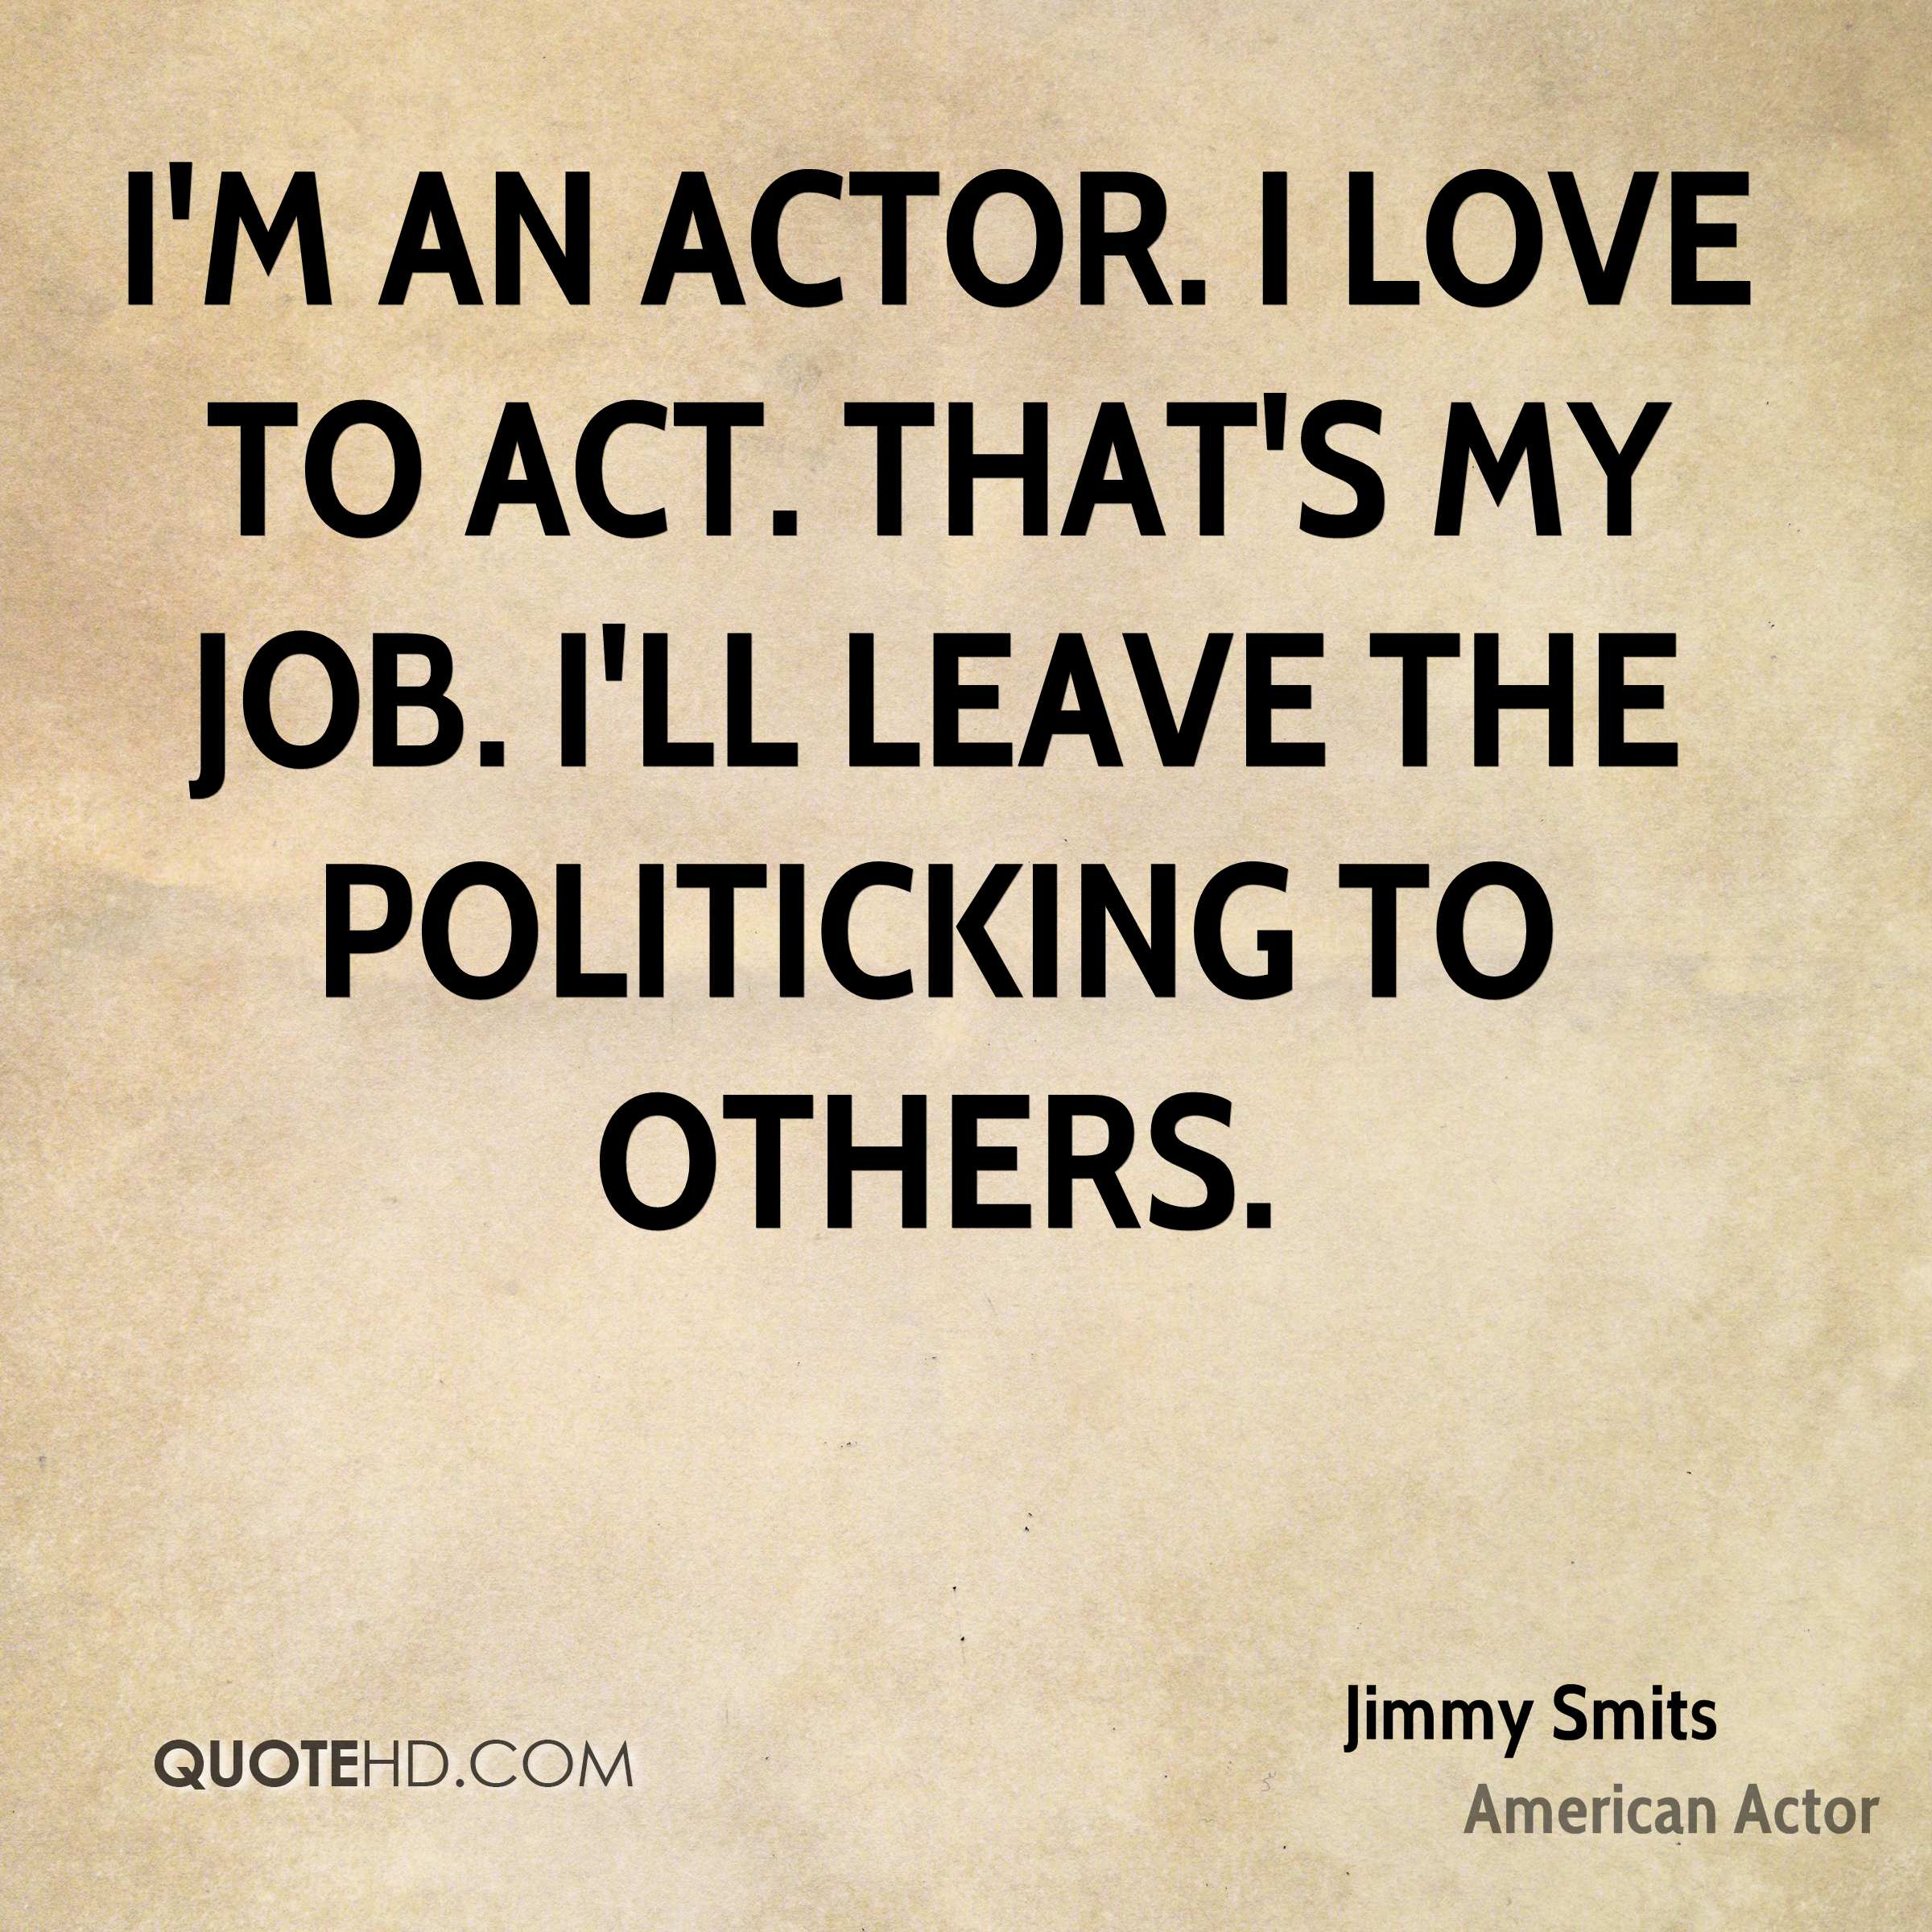 I'm an actor. I love to act. That's my job. I'll leave the politicking to others.